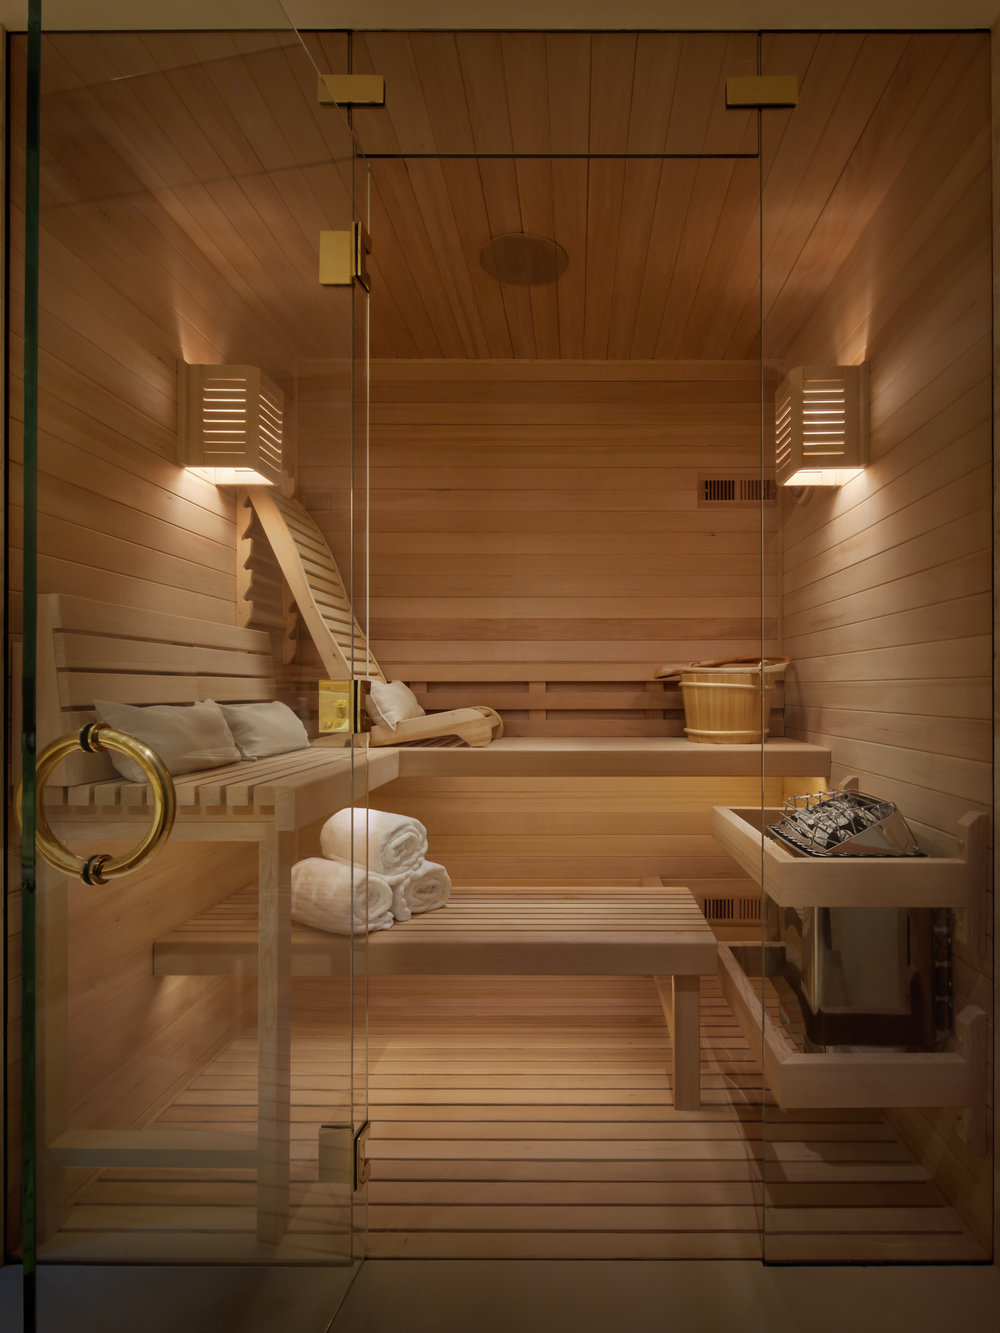 TBS_Woodside_Sauna_Large-1.jpg